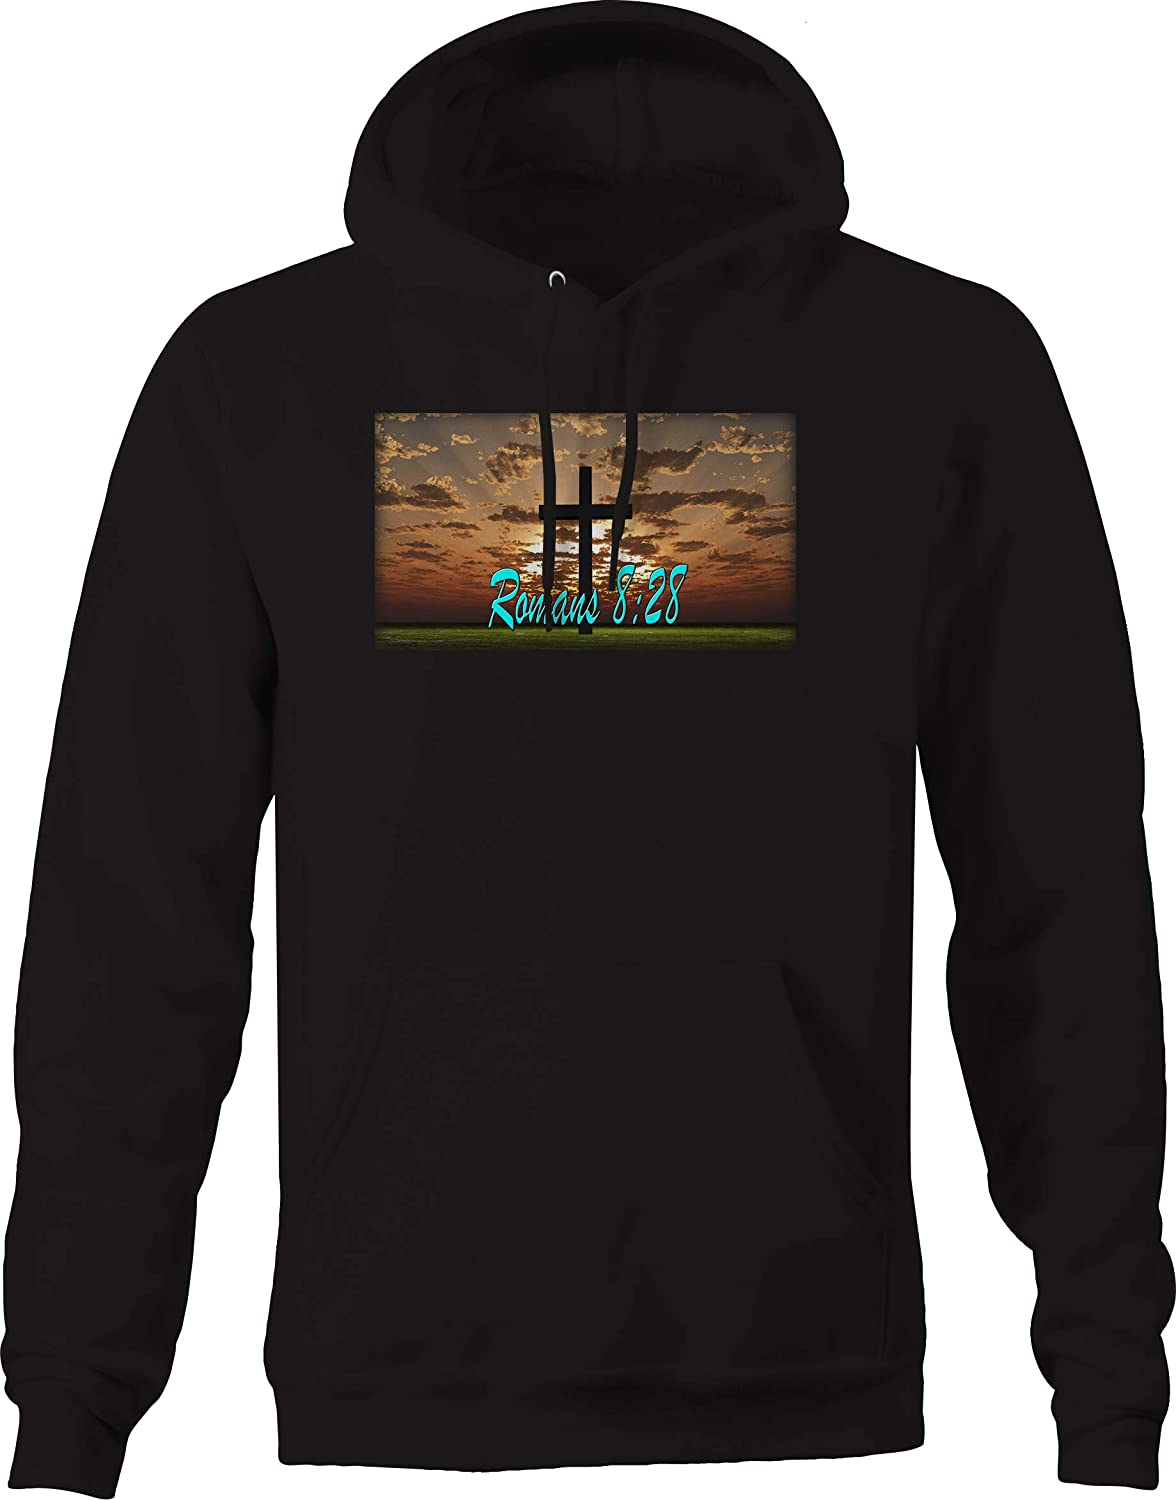 Romans 8:28 Cross Jesus Holy Kingdom Bible Sweatshirt